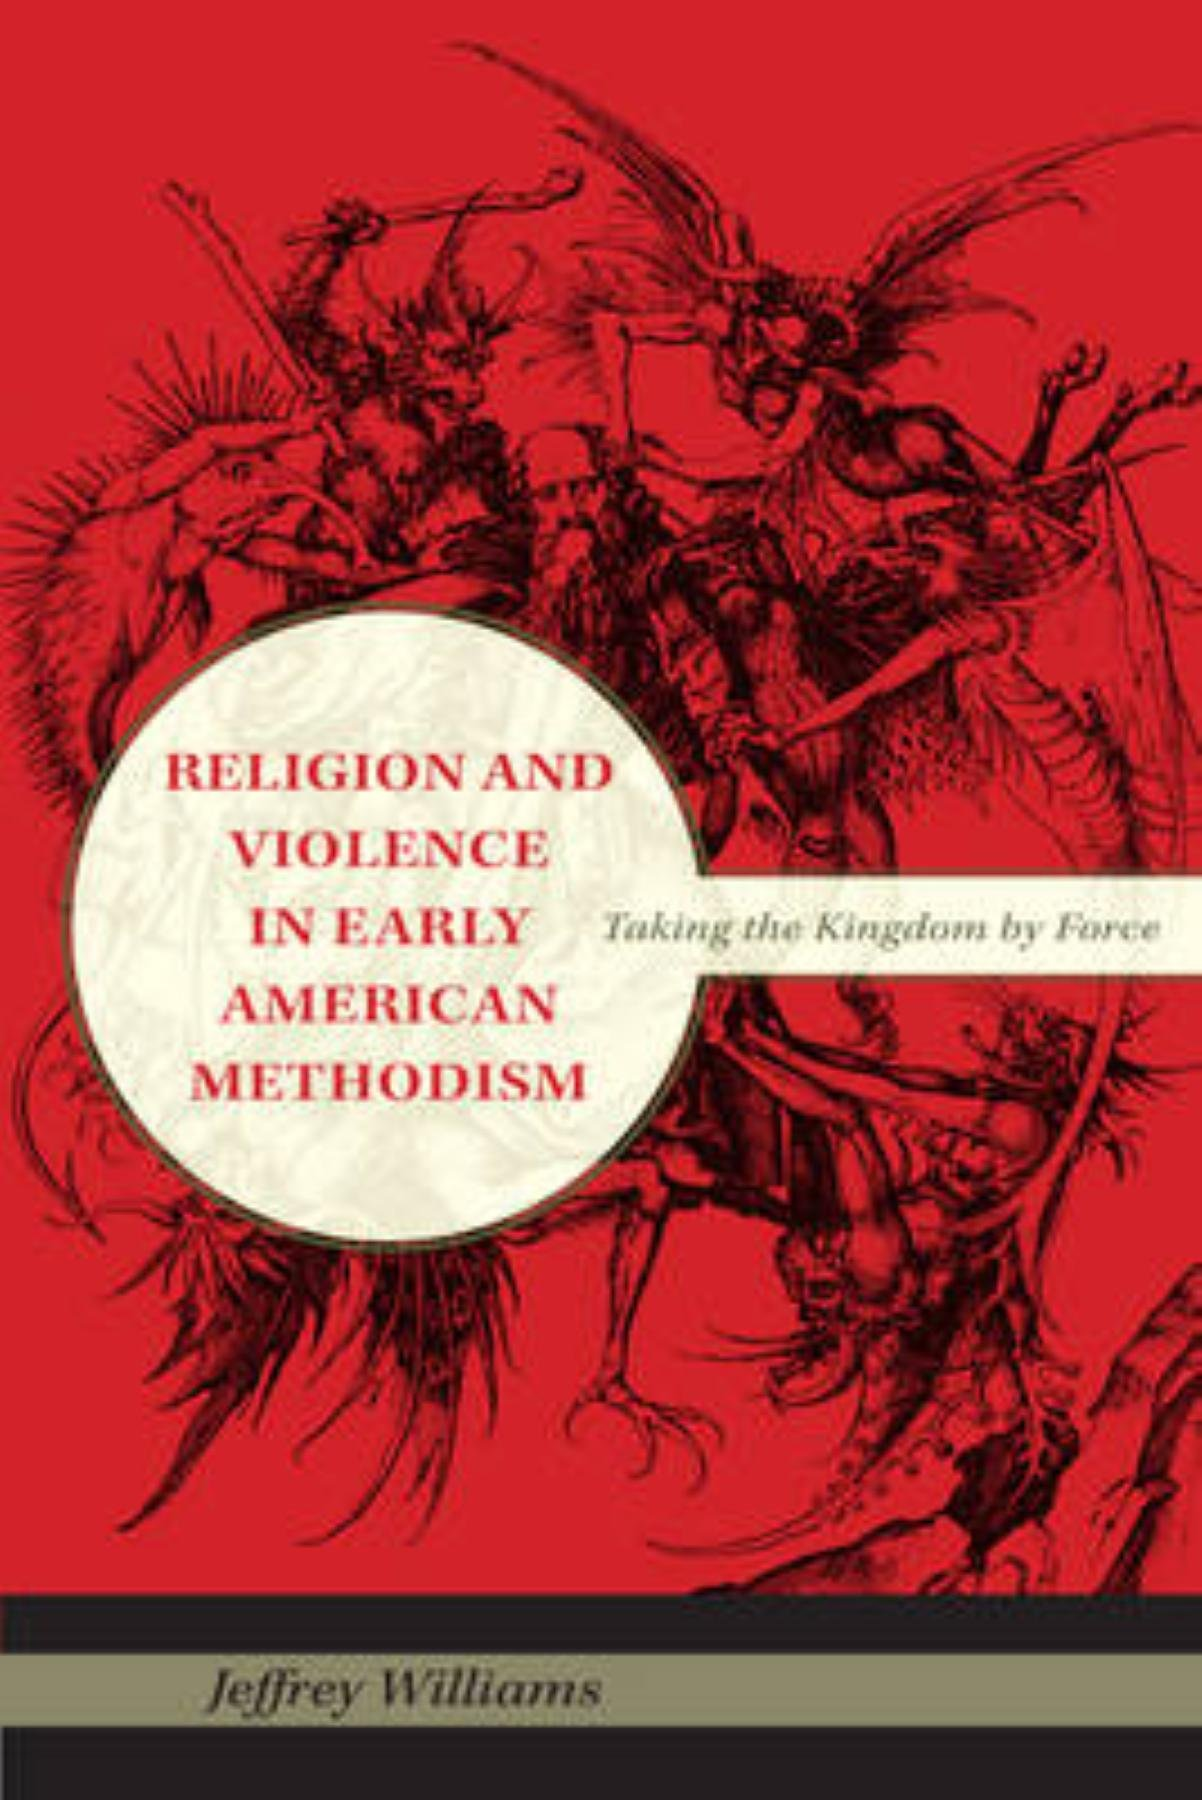 Religion and Violence in Early American Methodism: Taking the Kingdom by Force (Religion in North America) by Indiana University Press